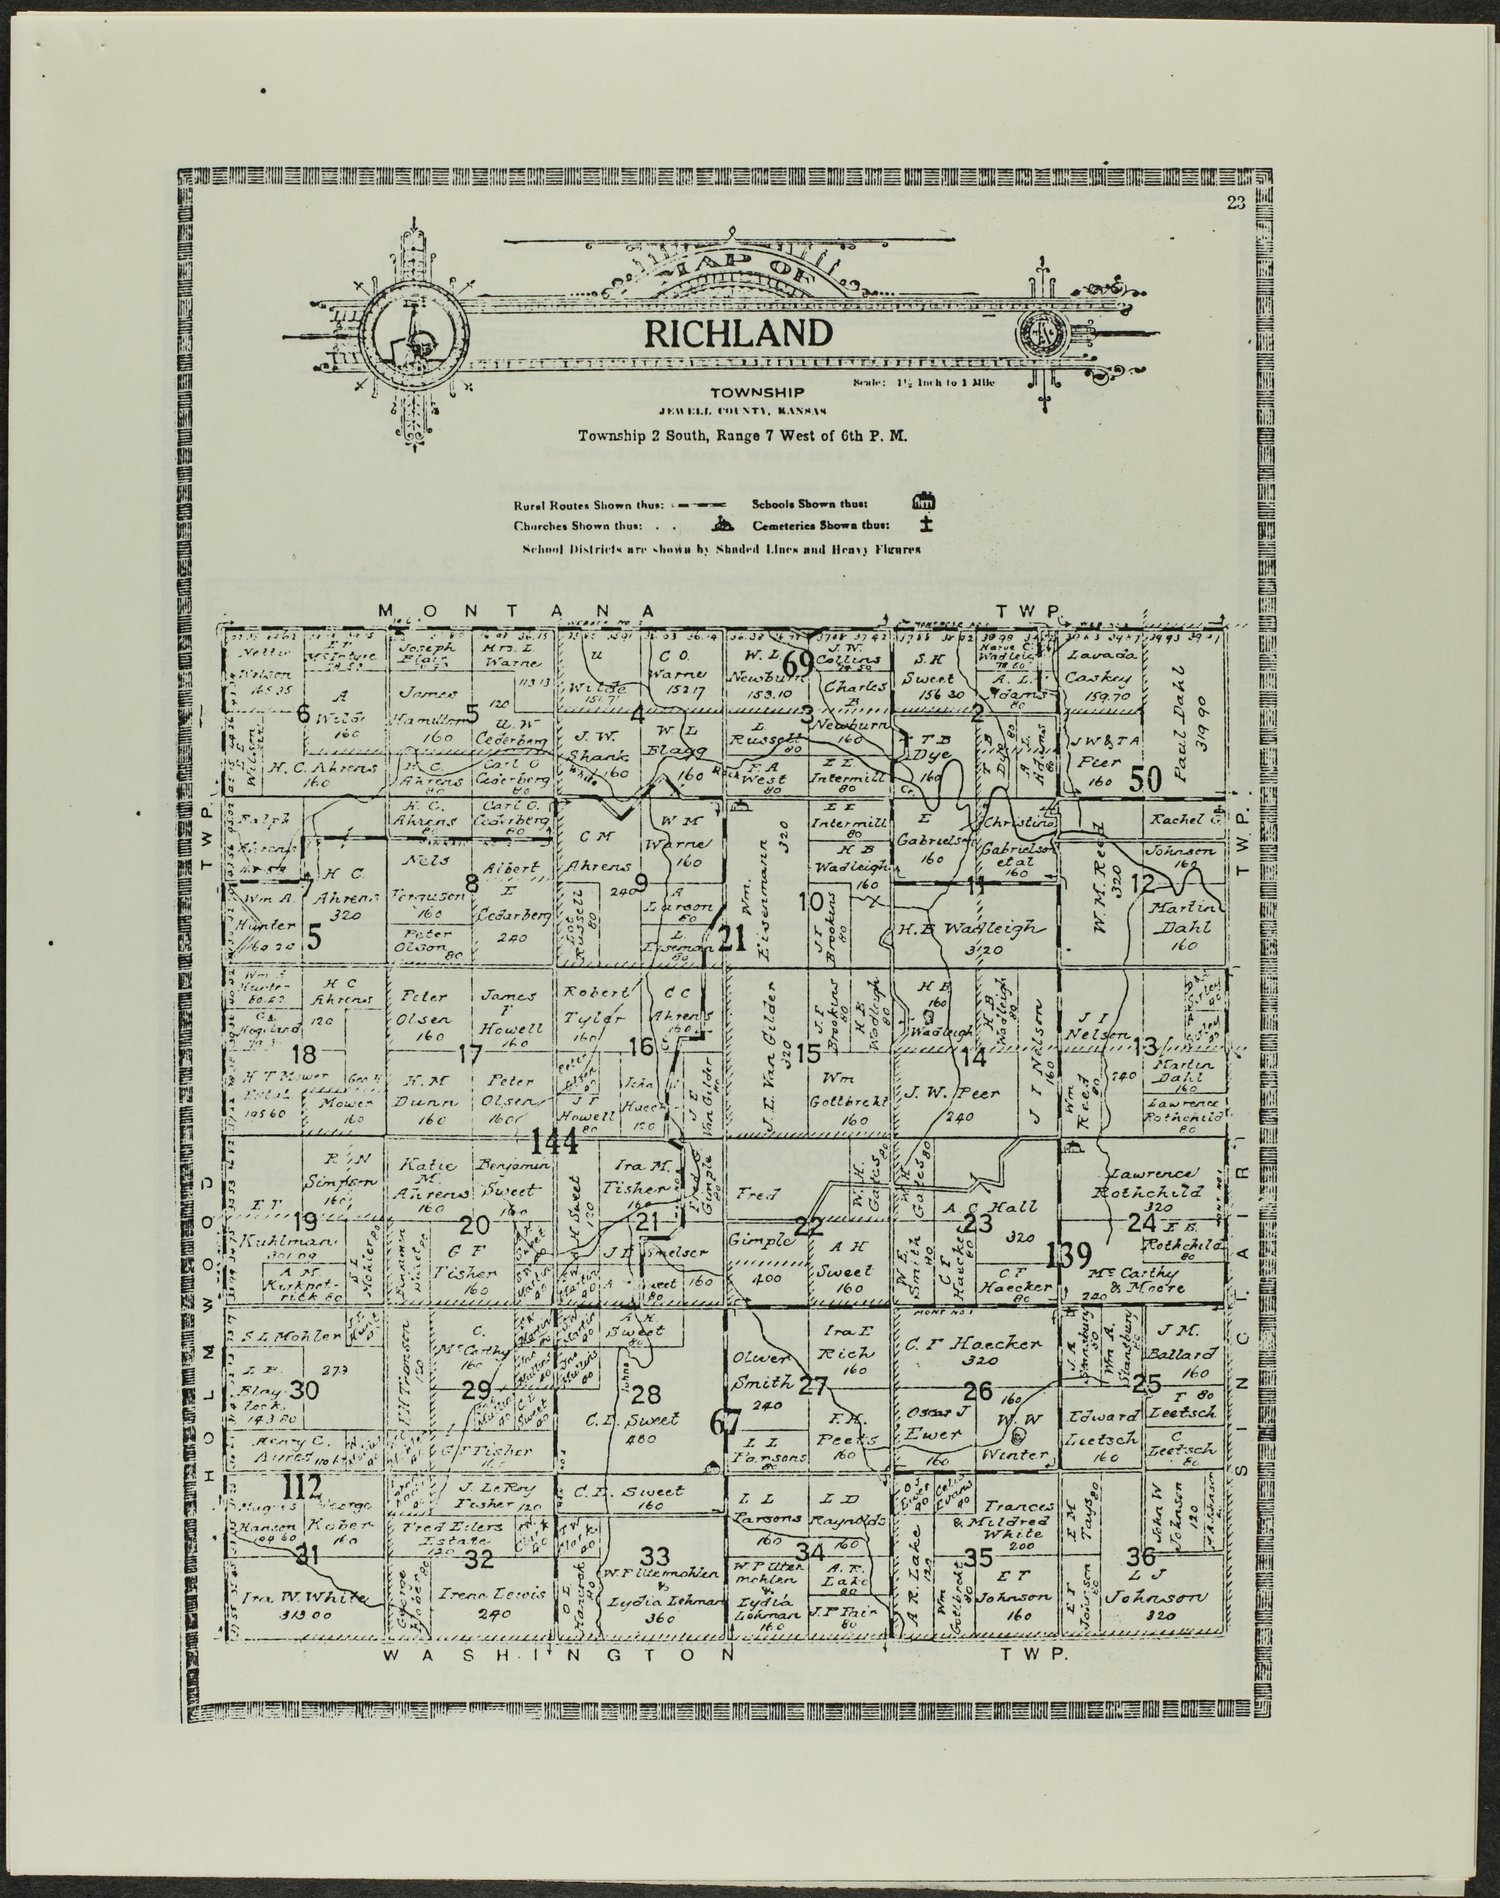 Atlas and plat book of Jewell County, Kansas - 23